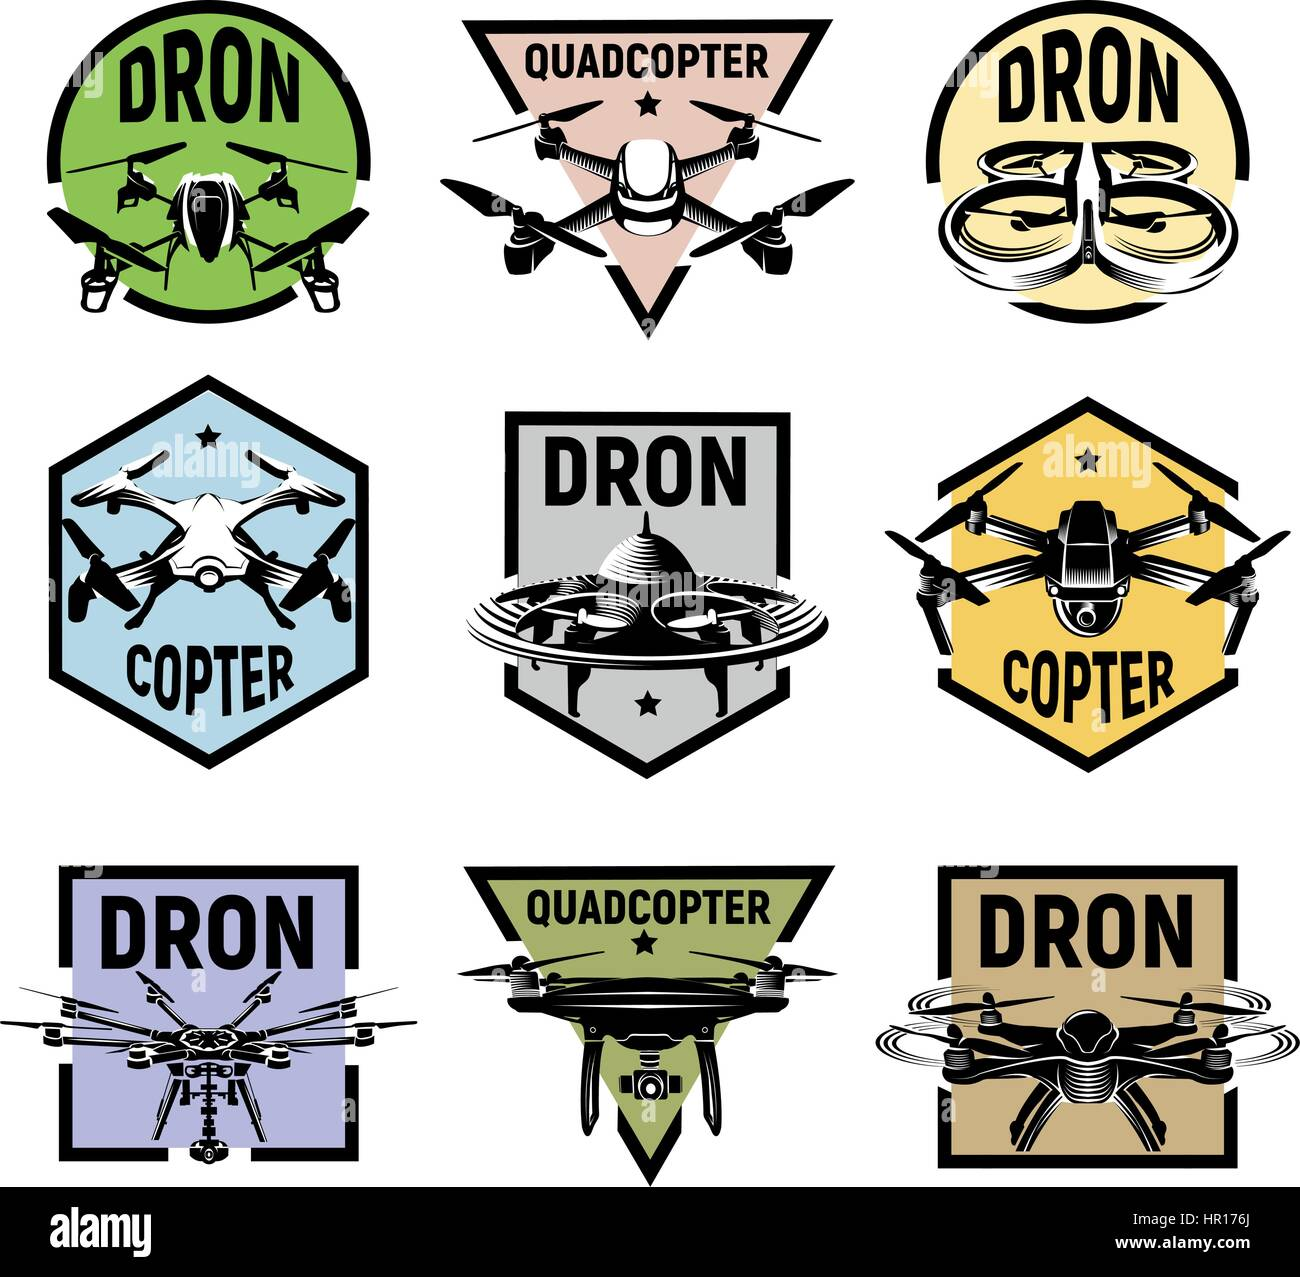 flying drone toy with Stock Photo Isolated Quadcopter Icons In Colorful Frames Rc Drone Logos Collection 134637290 on Power Wheels Wild Thing Back Wilder Ever also Rc Planes Remote Control Airplanes Rc Jet Plane Brinquedos Controle Remoto Toy Flying Bird Radio Airplane Kids Toys S130 additionally Rc Flying Speeder Bike Star Wars in addition Zipline together with Star Wars Drones Millennium Falcon X Wing Starfighter 09 04 2015.